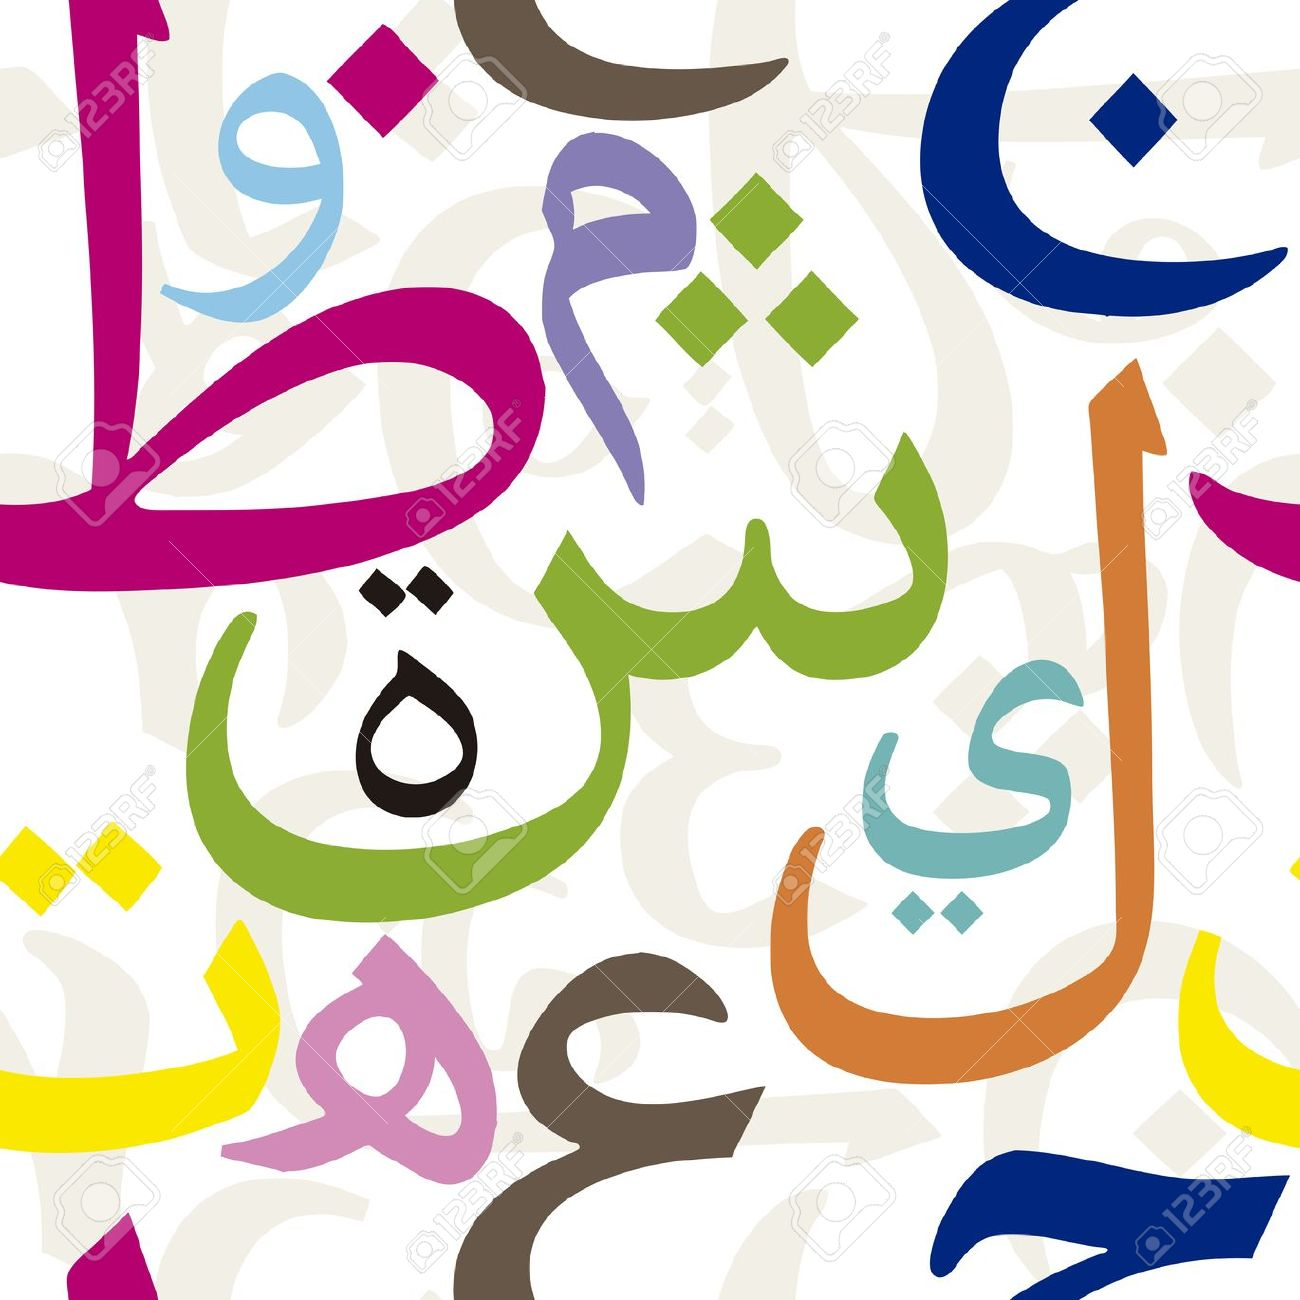 Download clipart arabic jpg royalty free library Download clipart arabic - ClipartFest jpg royalty free library